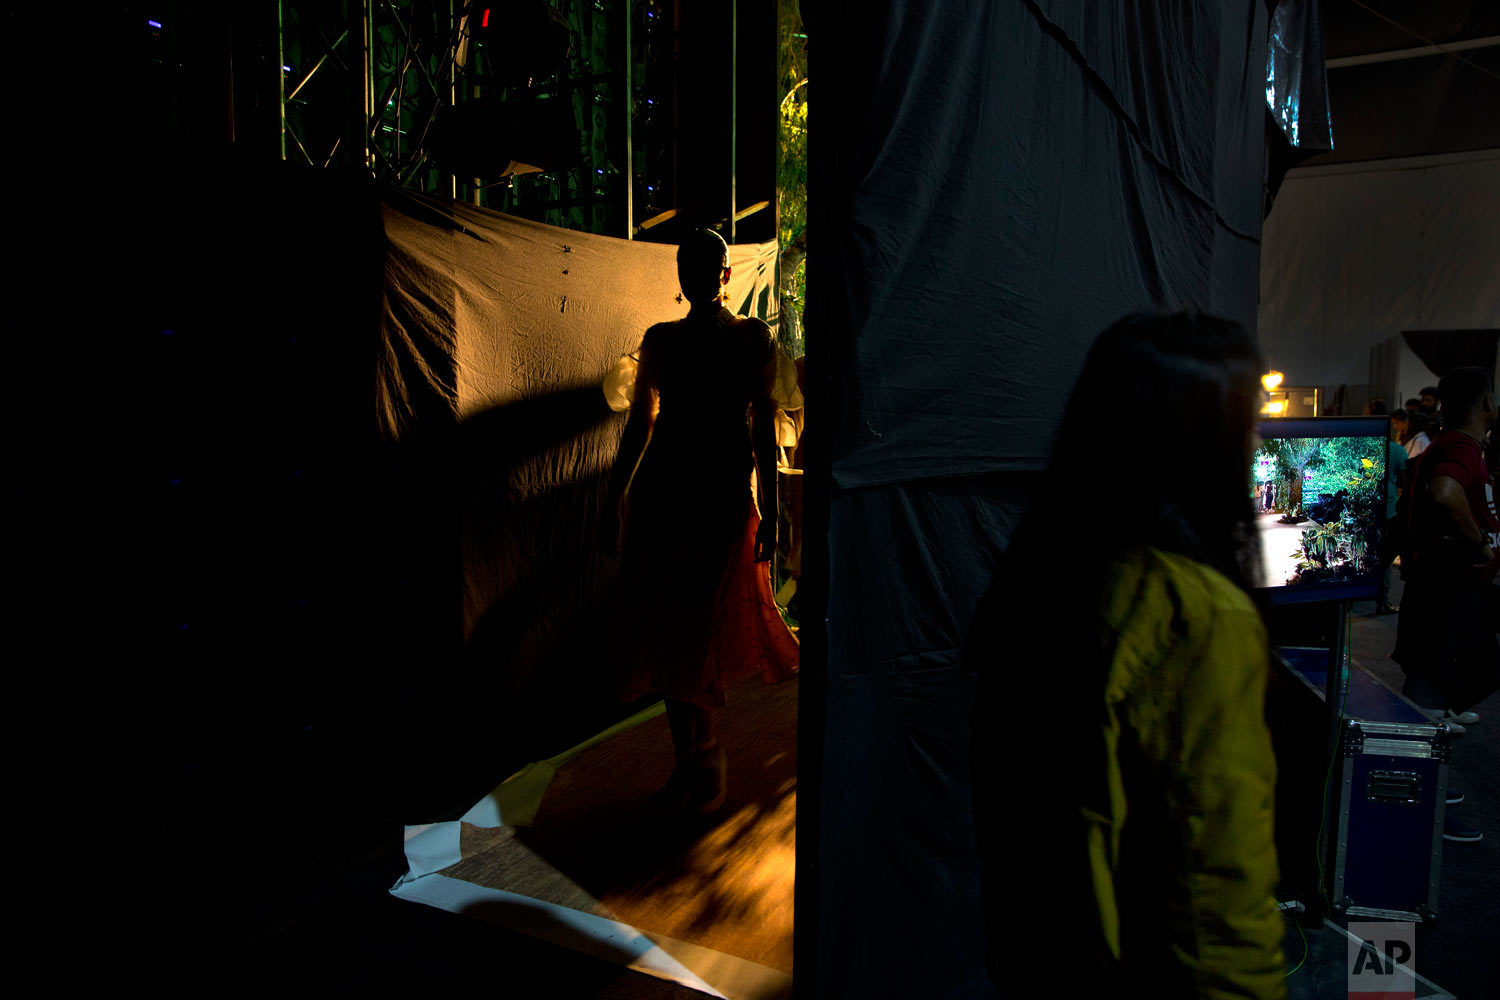 A model returns backstage after showcasing an outfit at the Lotus Makeup India Fashion Week, Wednesday, March 13, 2019, in New Delhi, India. (AP Photo/Manish Swarup)